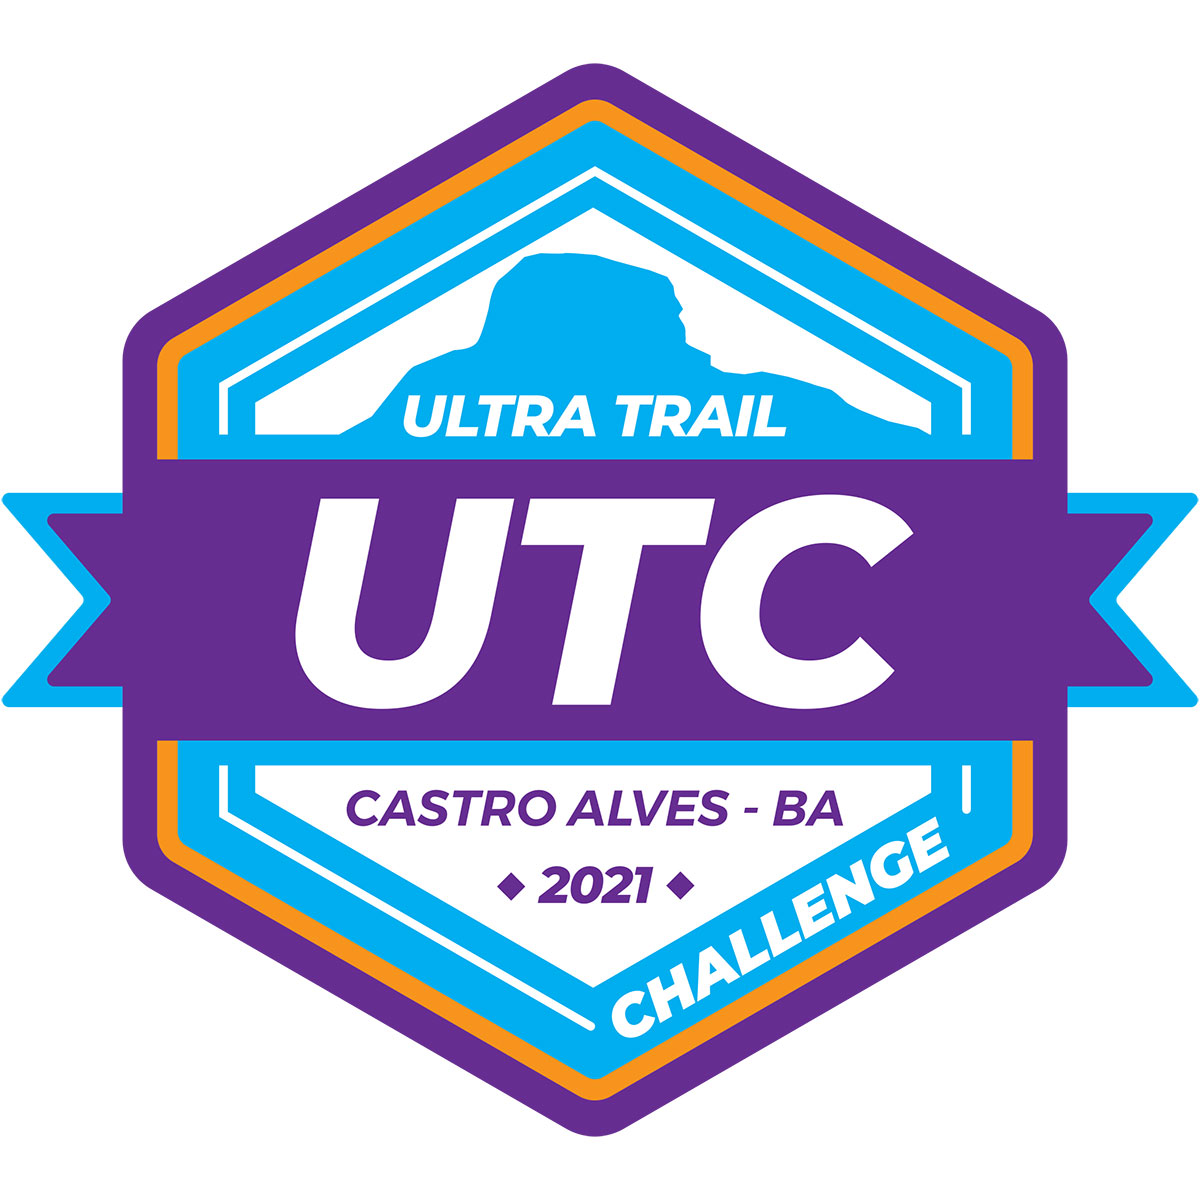 UTCA Ultra Trail Castro Alves 2021